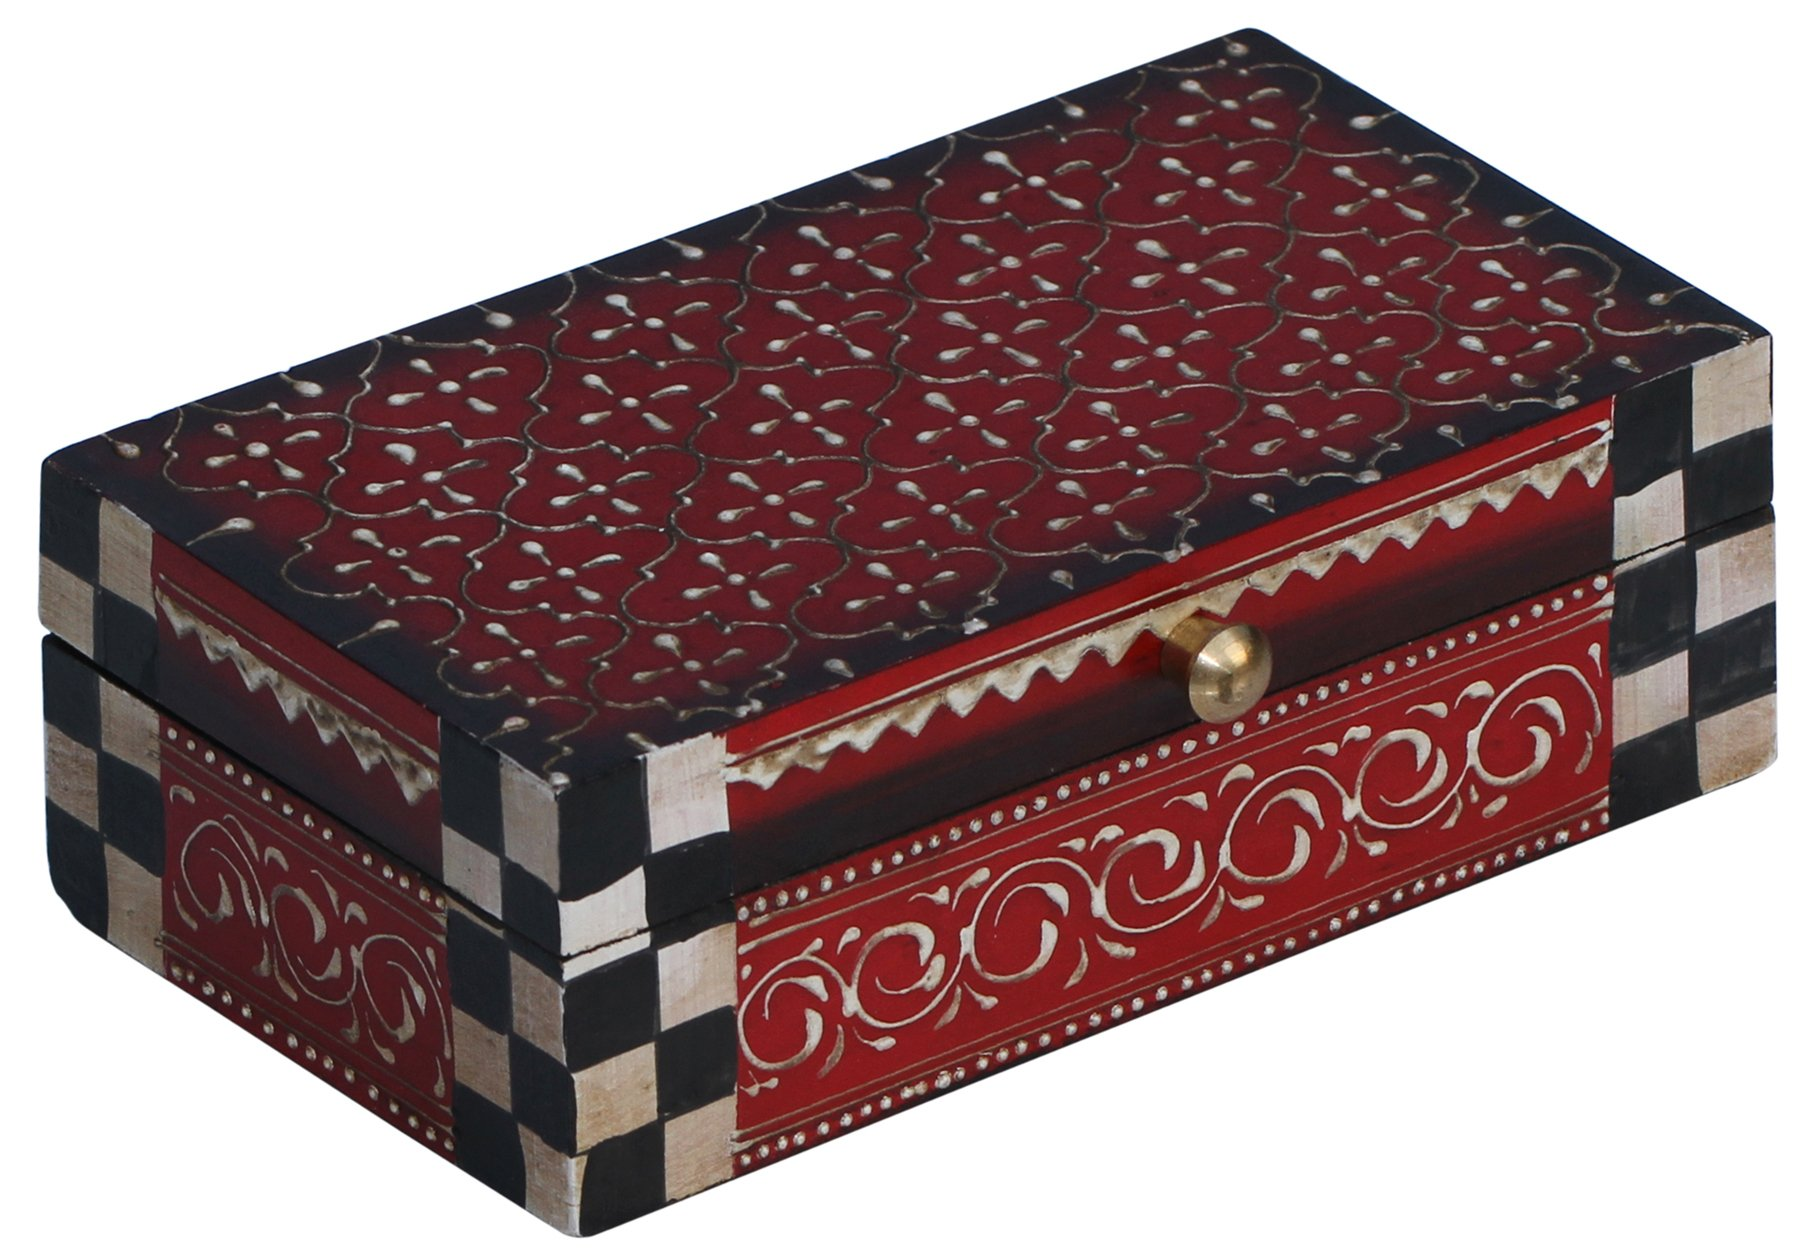 Decorative Wood Box - Handmade Treasure Chest - Red Premium Quality and CONE PAINTING ART Trinket keepsake Decorative Jewelry Box from India - Gifts for Her